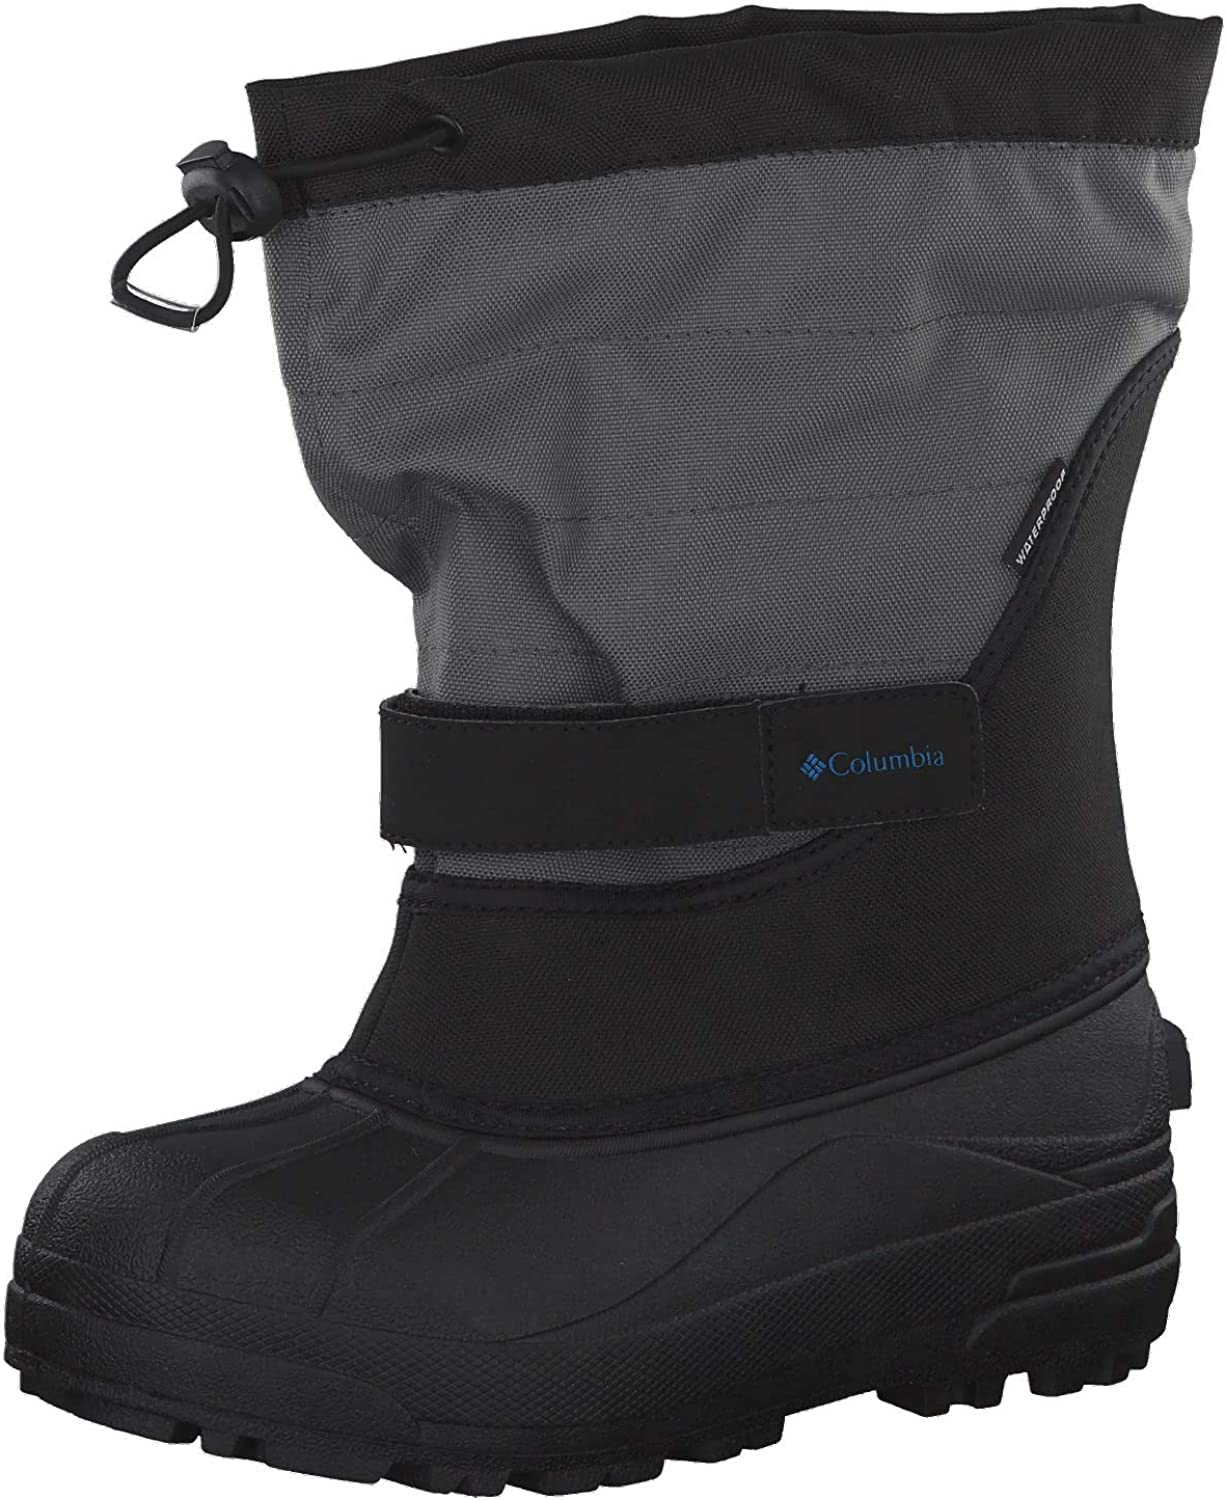 Snow Boots Youth